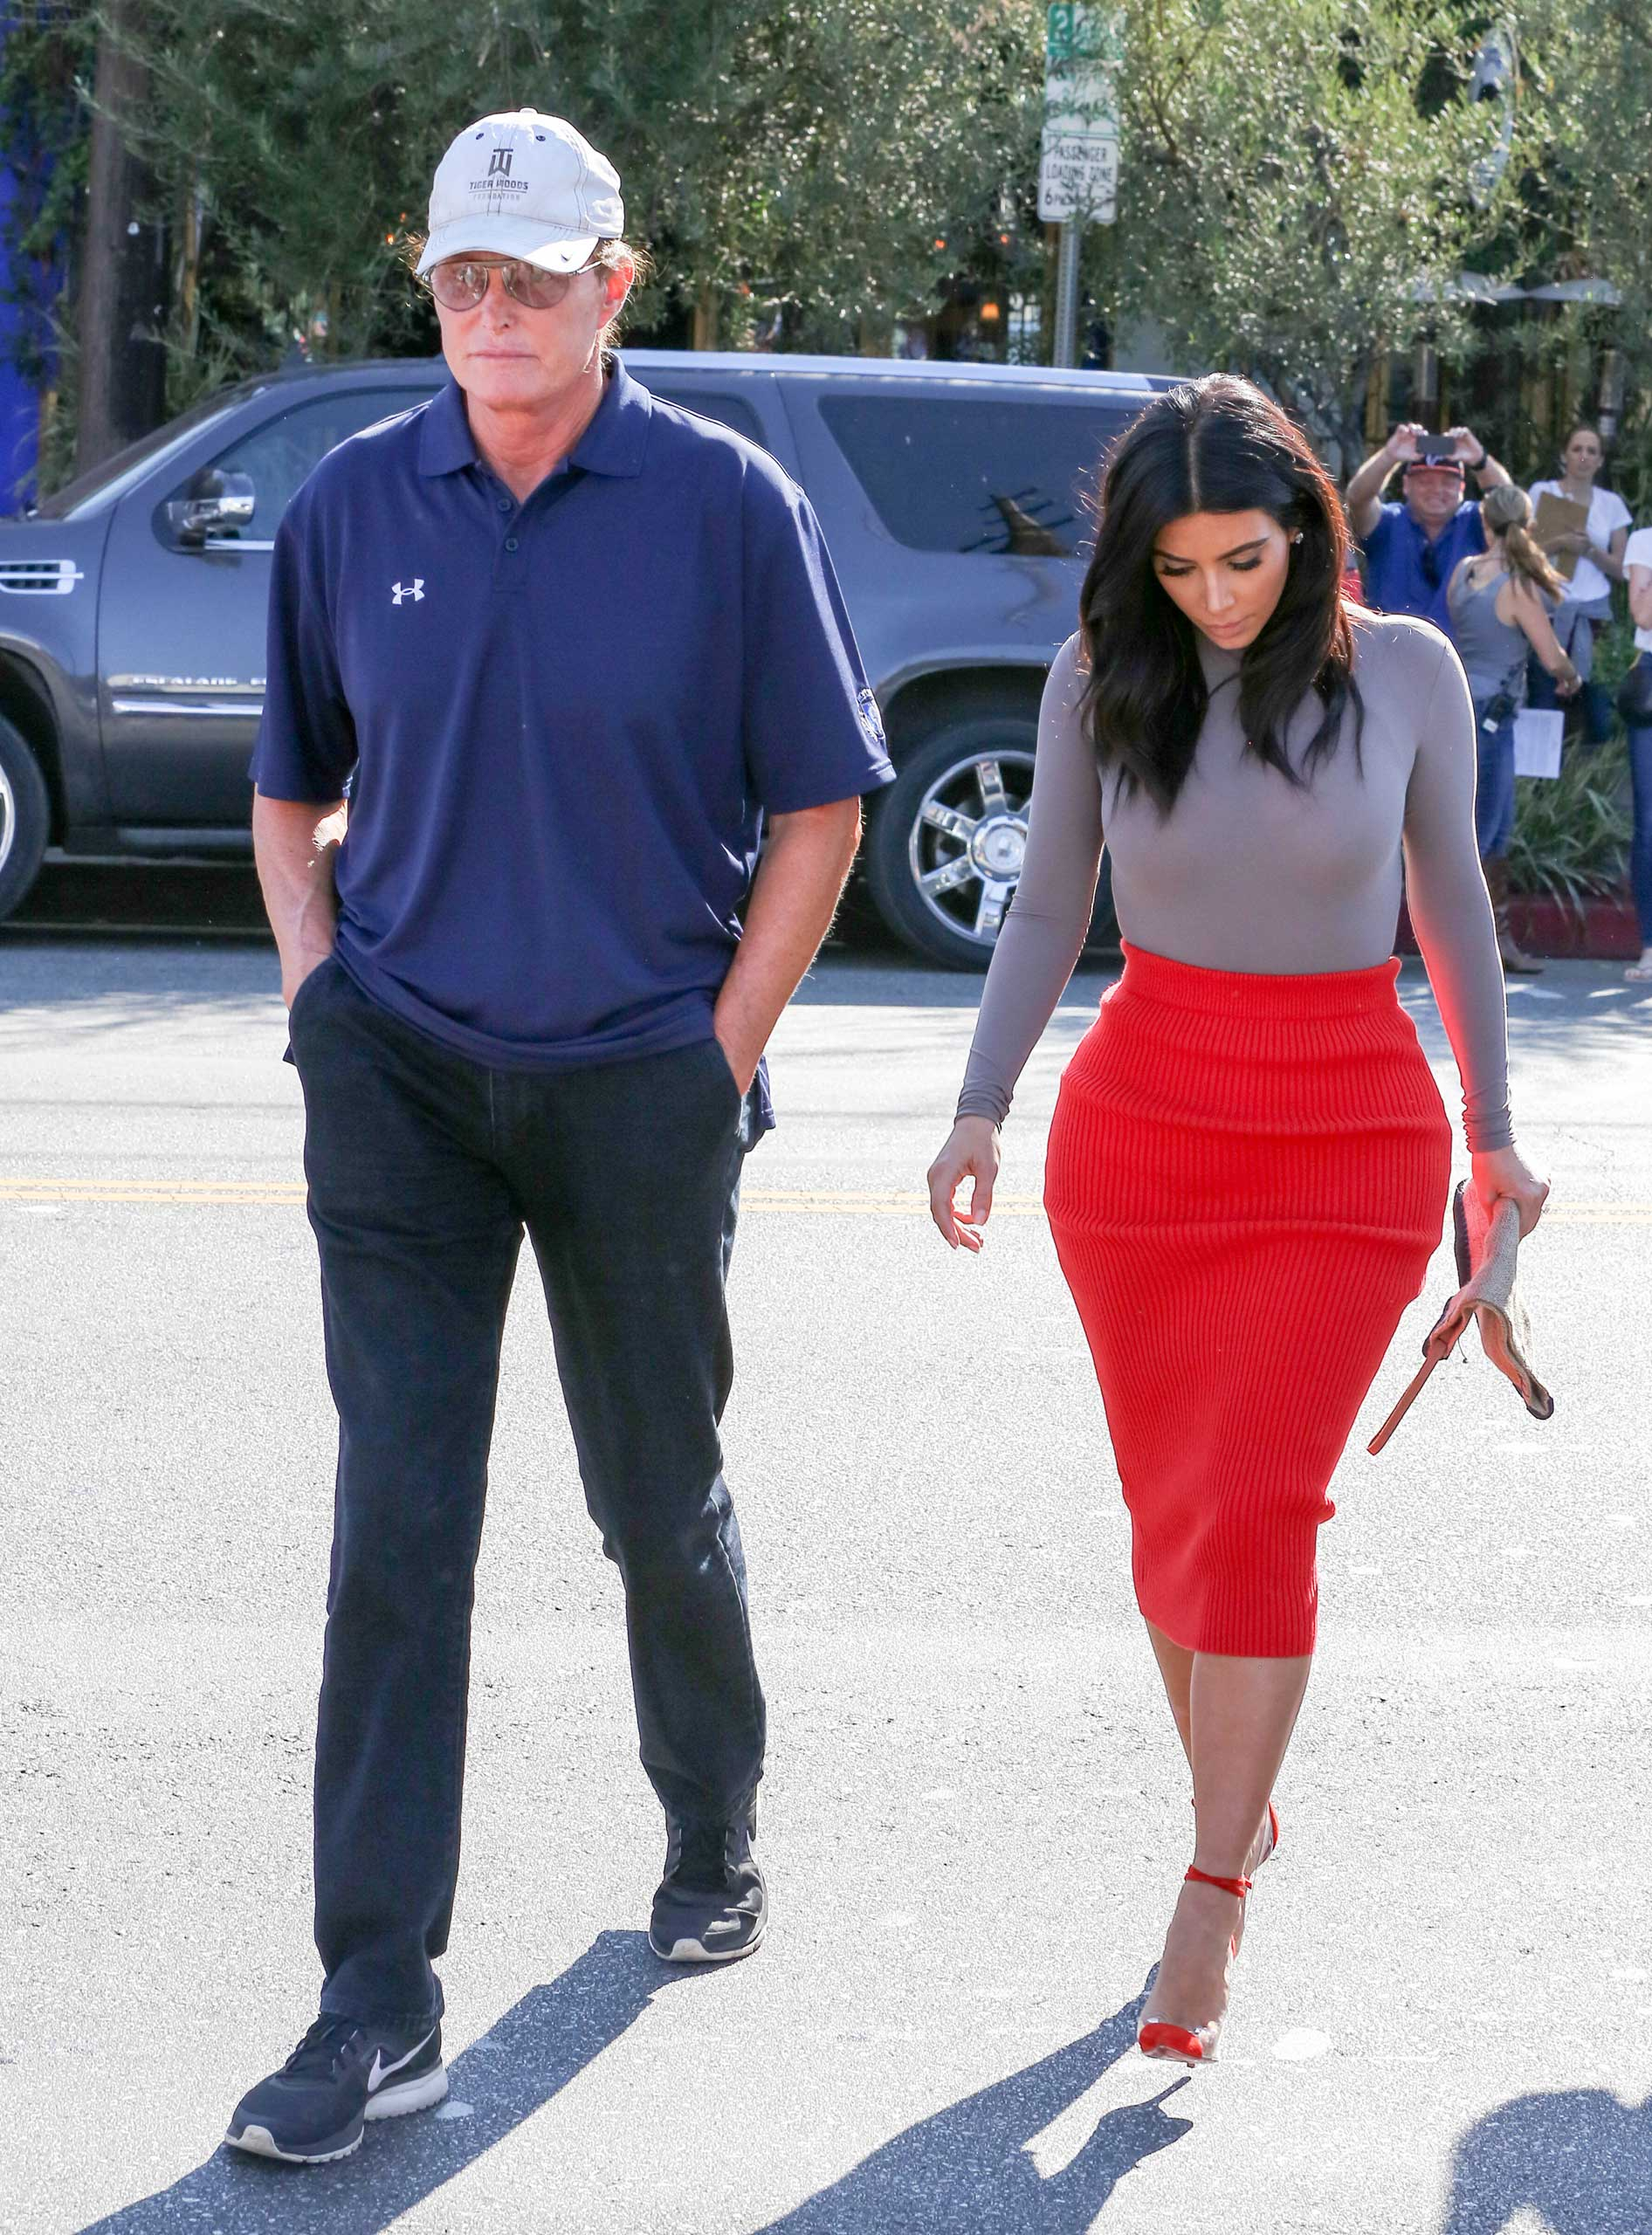 Jenner walks with step-daughter Kim Kardashian in October of 2014 — about five months after rapper Kanye West became his son-in-law.